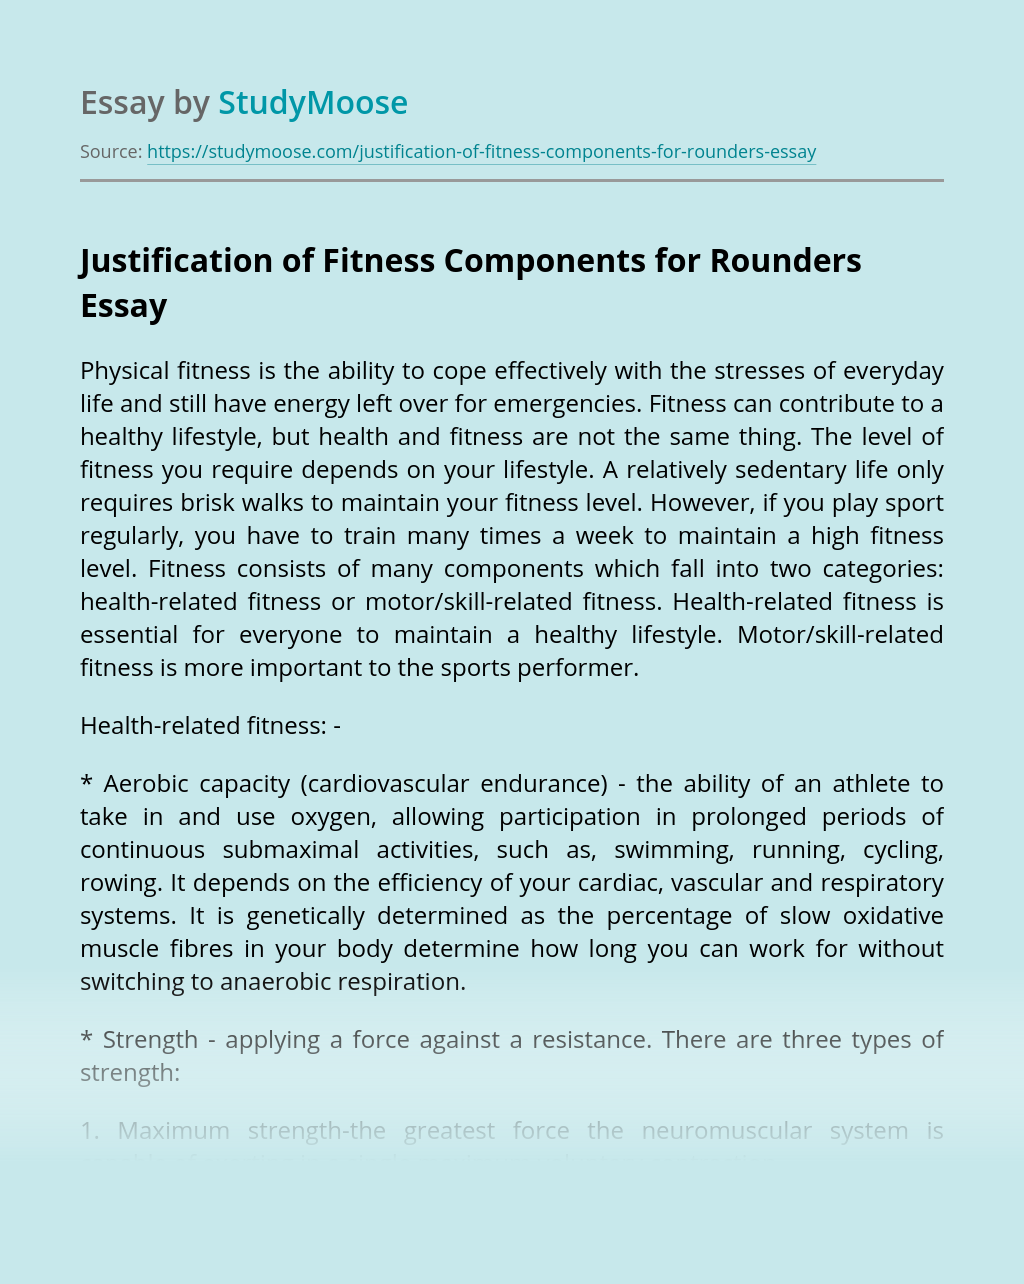 Justification of Fitness Components for Rounders